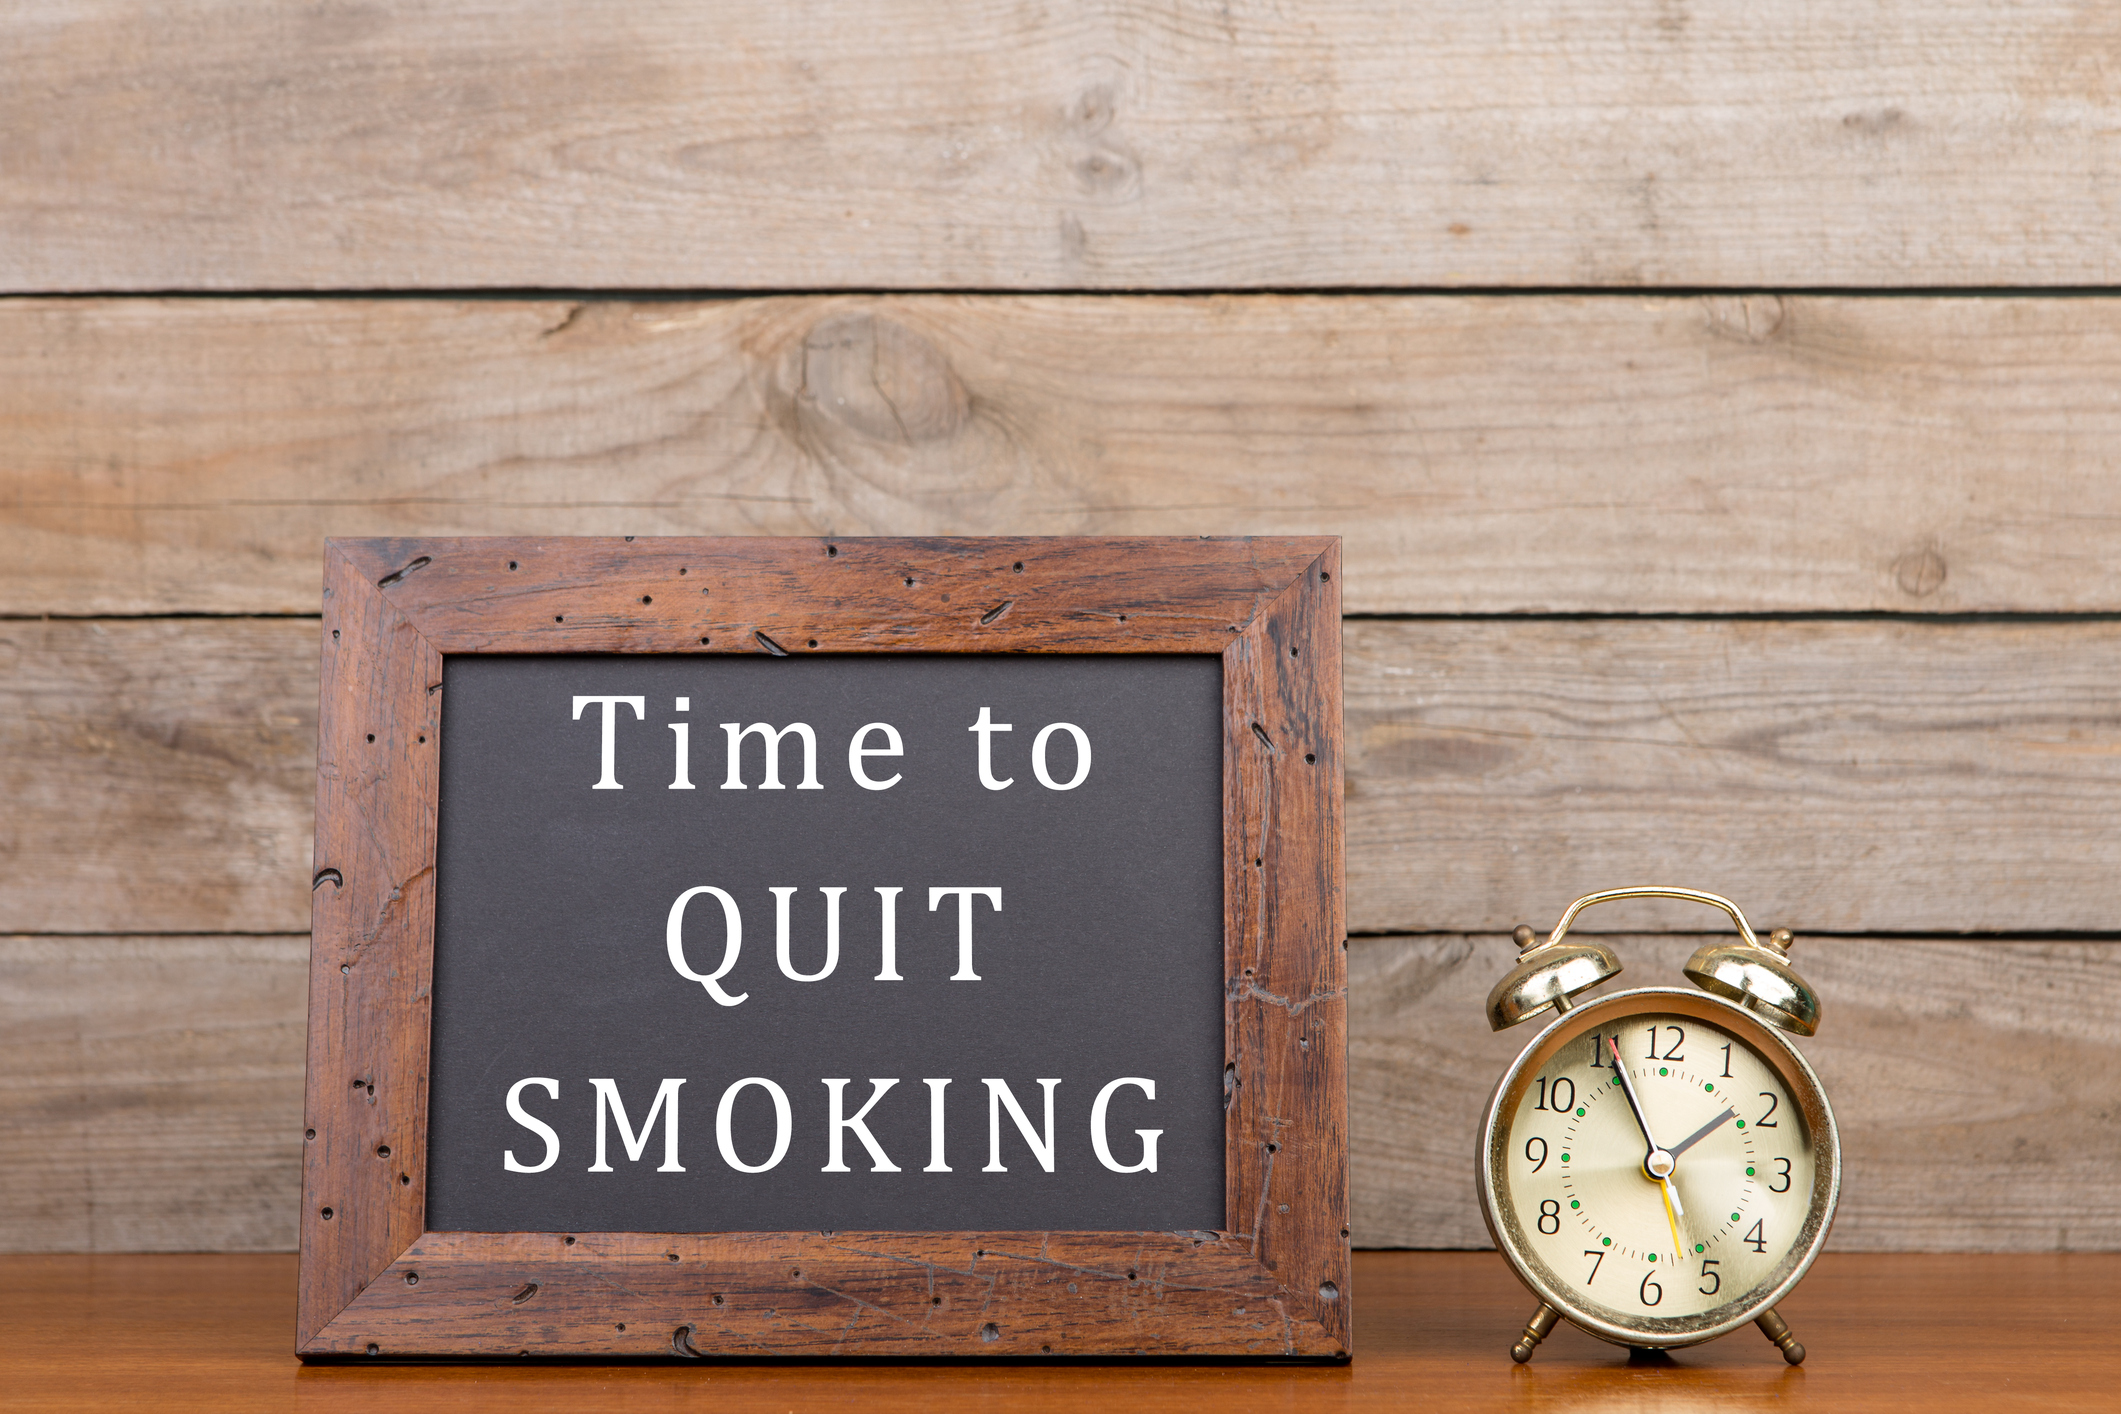 "Is it Time to Quit? - How many times have you reached for a cigarette and asked yourself, ""Why am I doing this""? Of course you know that you shouldn't but you also know that you will have it anyway. The nicotine that you intake is highly addictive. When you use tobacco products, there are the things that you experience immediately; such as, the ability to focus better, the feeling that your stress has been reduced, and calm. When levels drop, your body goes through withdrawal and craves more. If you use tobacco products to help you cope in difficult or stressful situations, you increase your dependence on nicotine. Remember, it is already addictive, now it serves a purpose. The truth is, you don't need it. The receptors in your brain that nicotine attaches to are really meant for chemicals that your body makes naturally. And, you can learn and practice techniques that help you deal with difficult situations. Learn how to put an end to your tobacco use. Sign-up for a smoking cessation program."